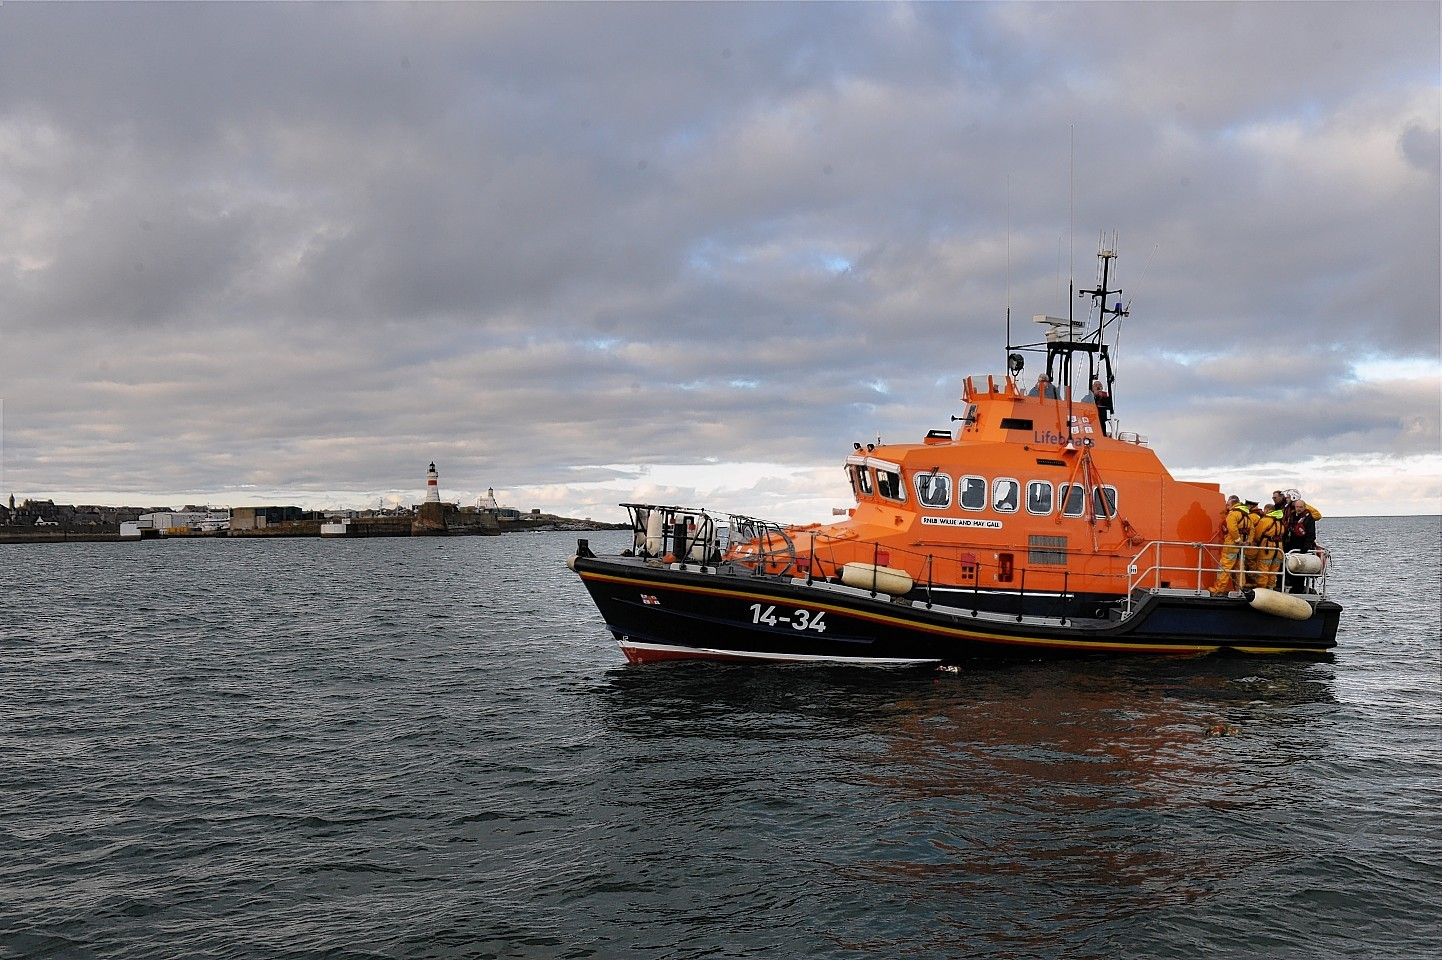 Fraserburgh lifeboat in action.